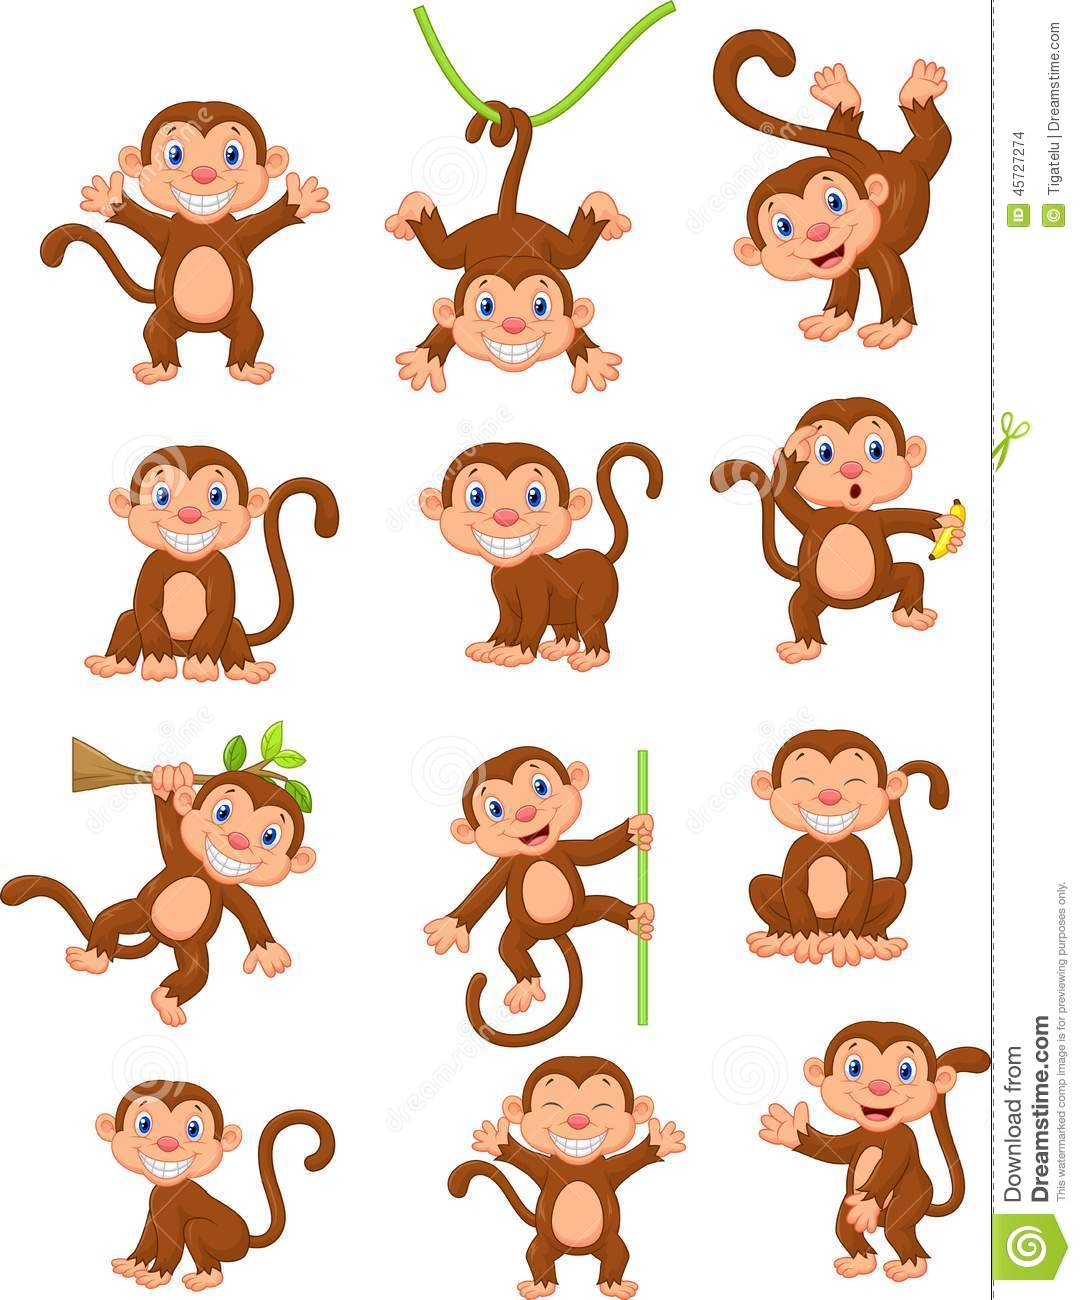 Stock Images, Royalty-Free Images & Vectors | Shutterstock  |Scared Monkey Animation